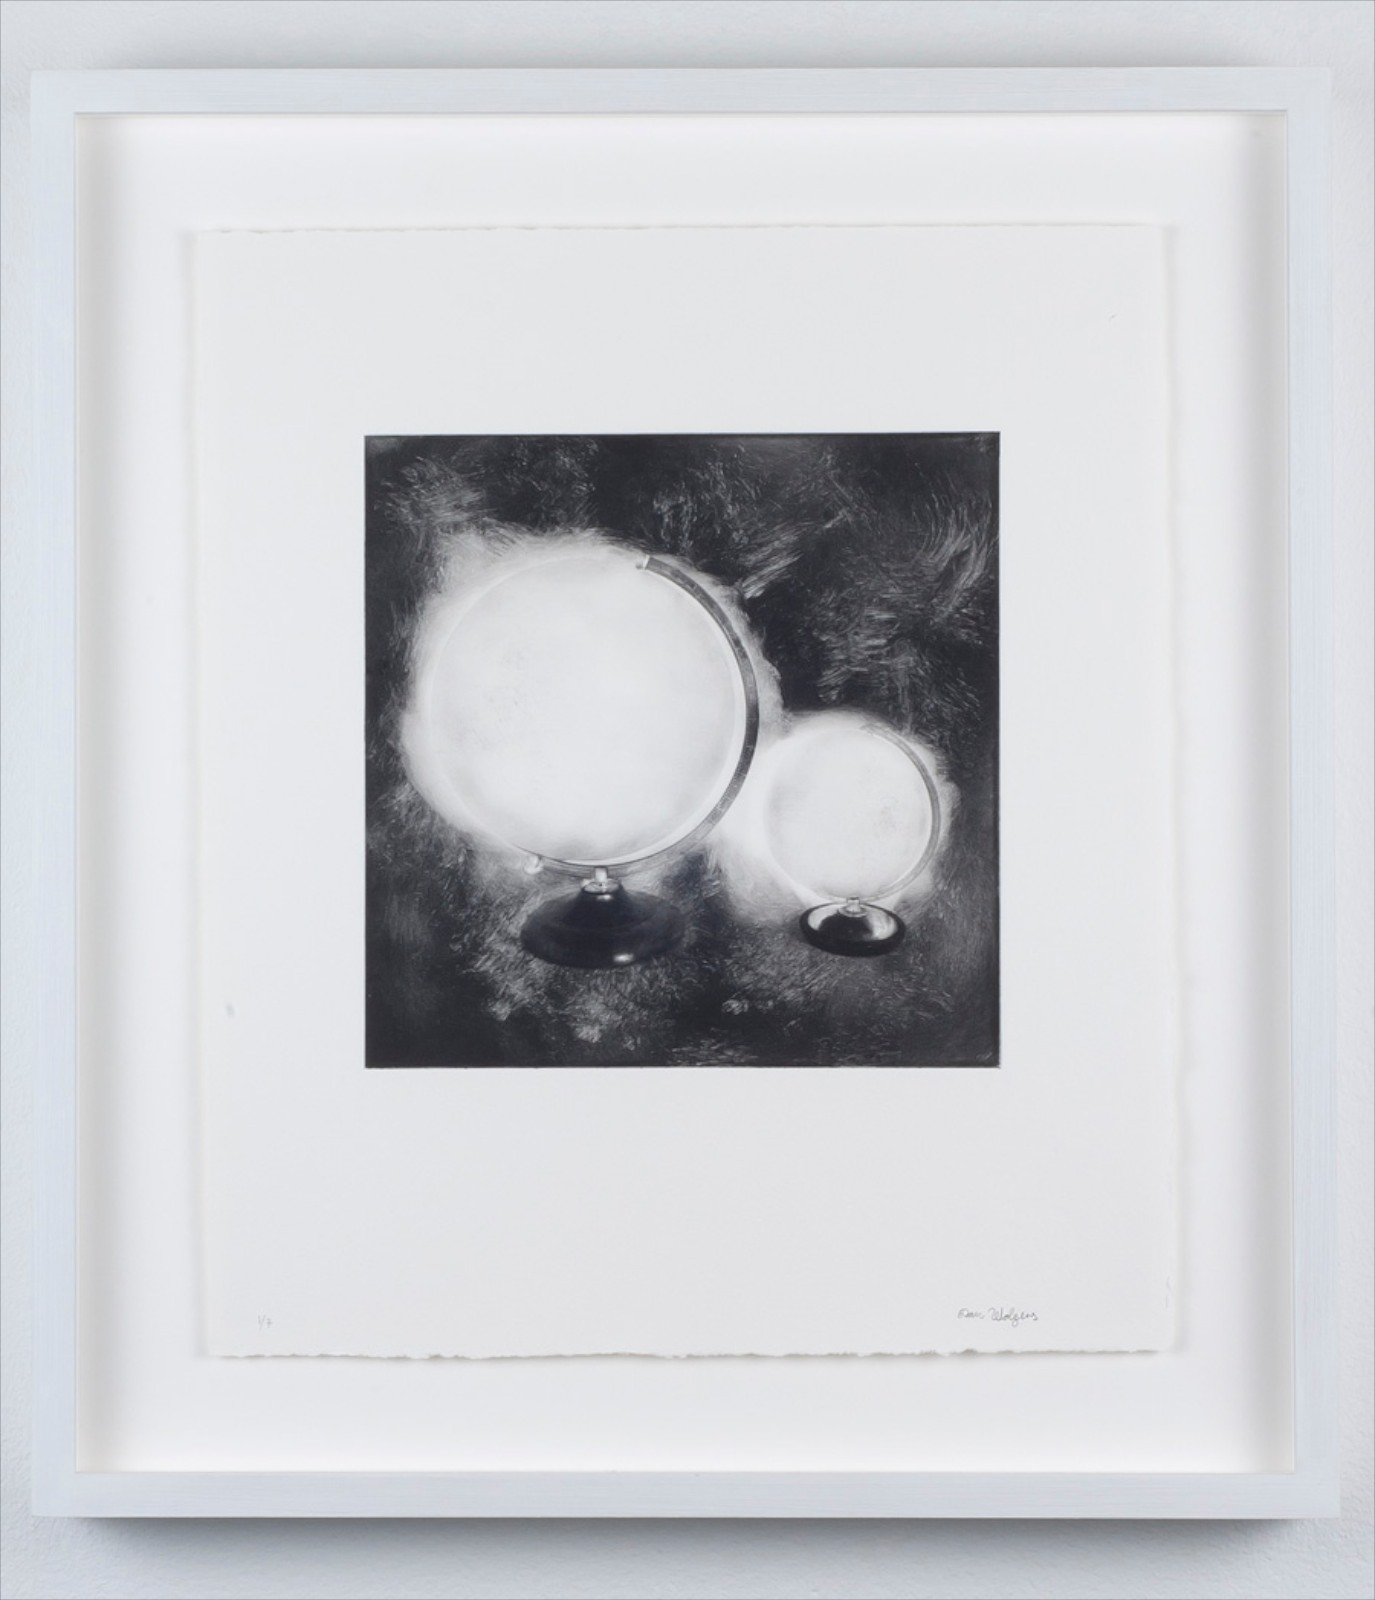 Hidden from view (Large and small globe), 2011, photogravure, 31 x 27.8 cm